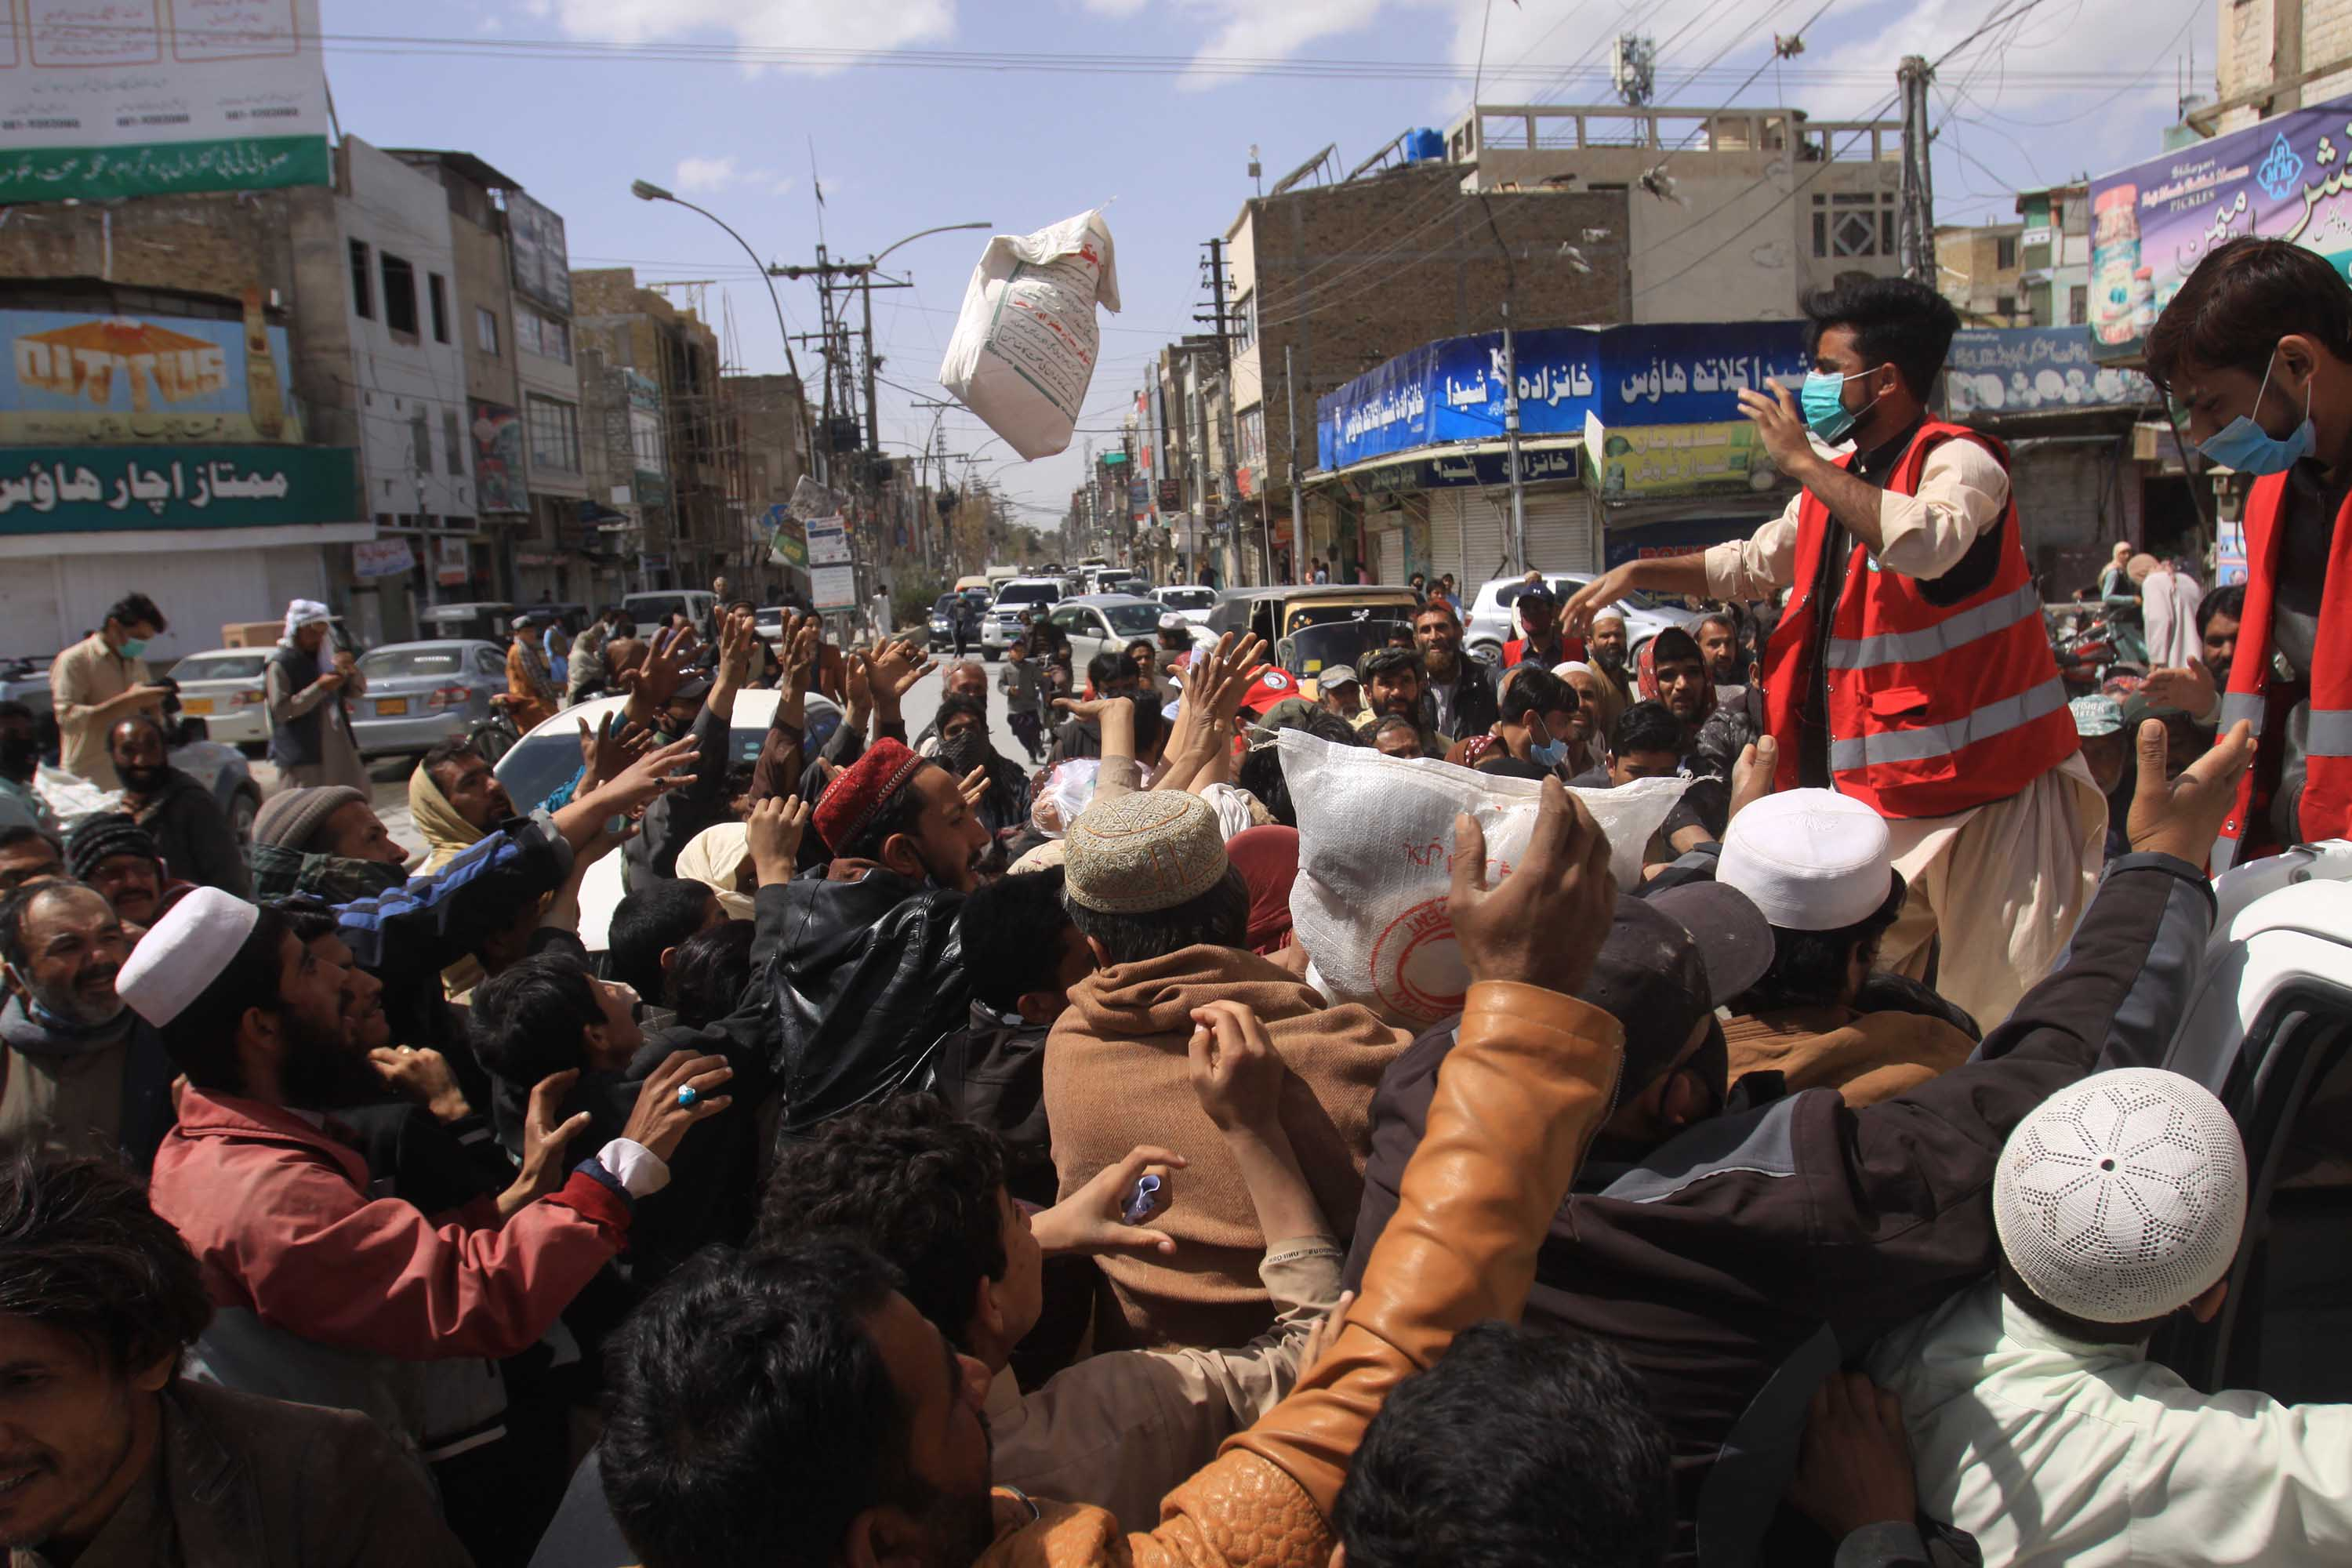 Daily wage workers, unemployed due to the coronavirus outbreak, jostle for free food supplies being distributed in Quetta, Pakistan, on Tuesday.